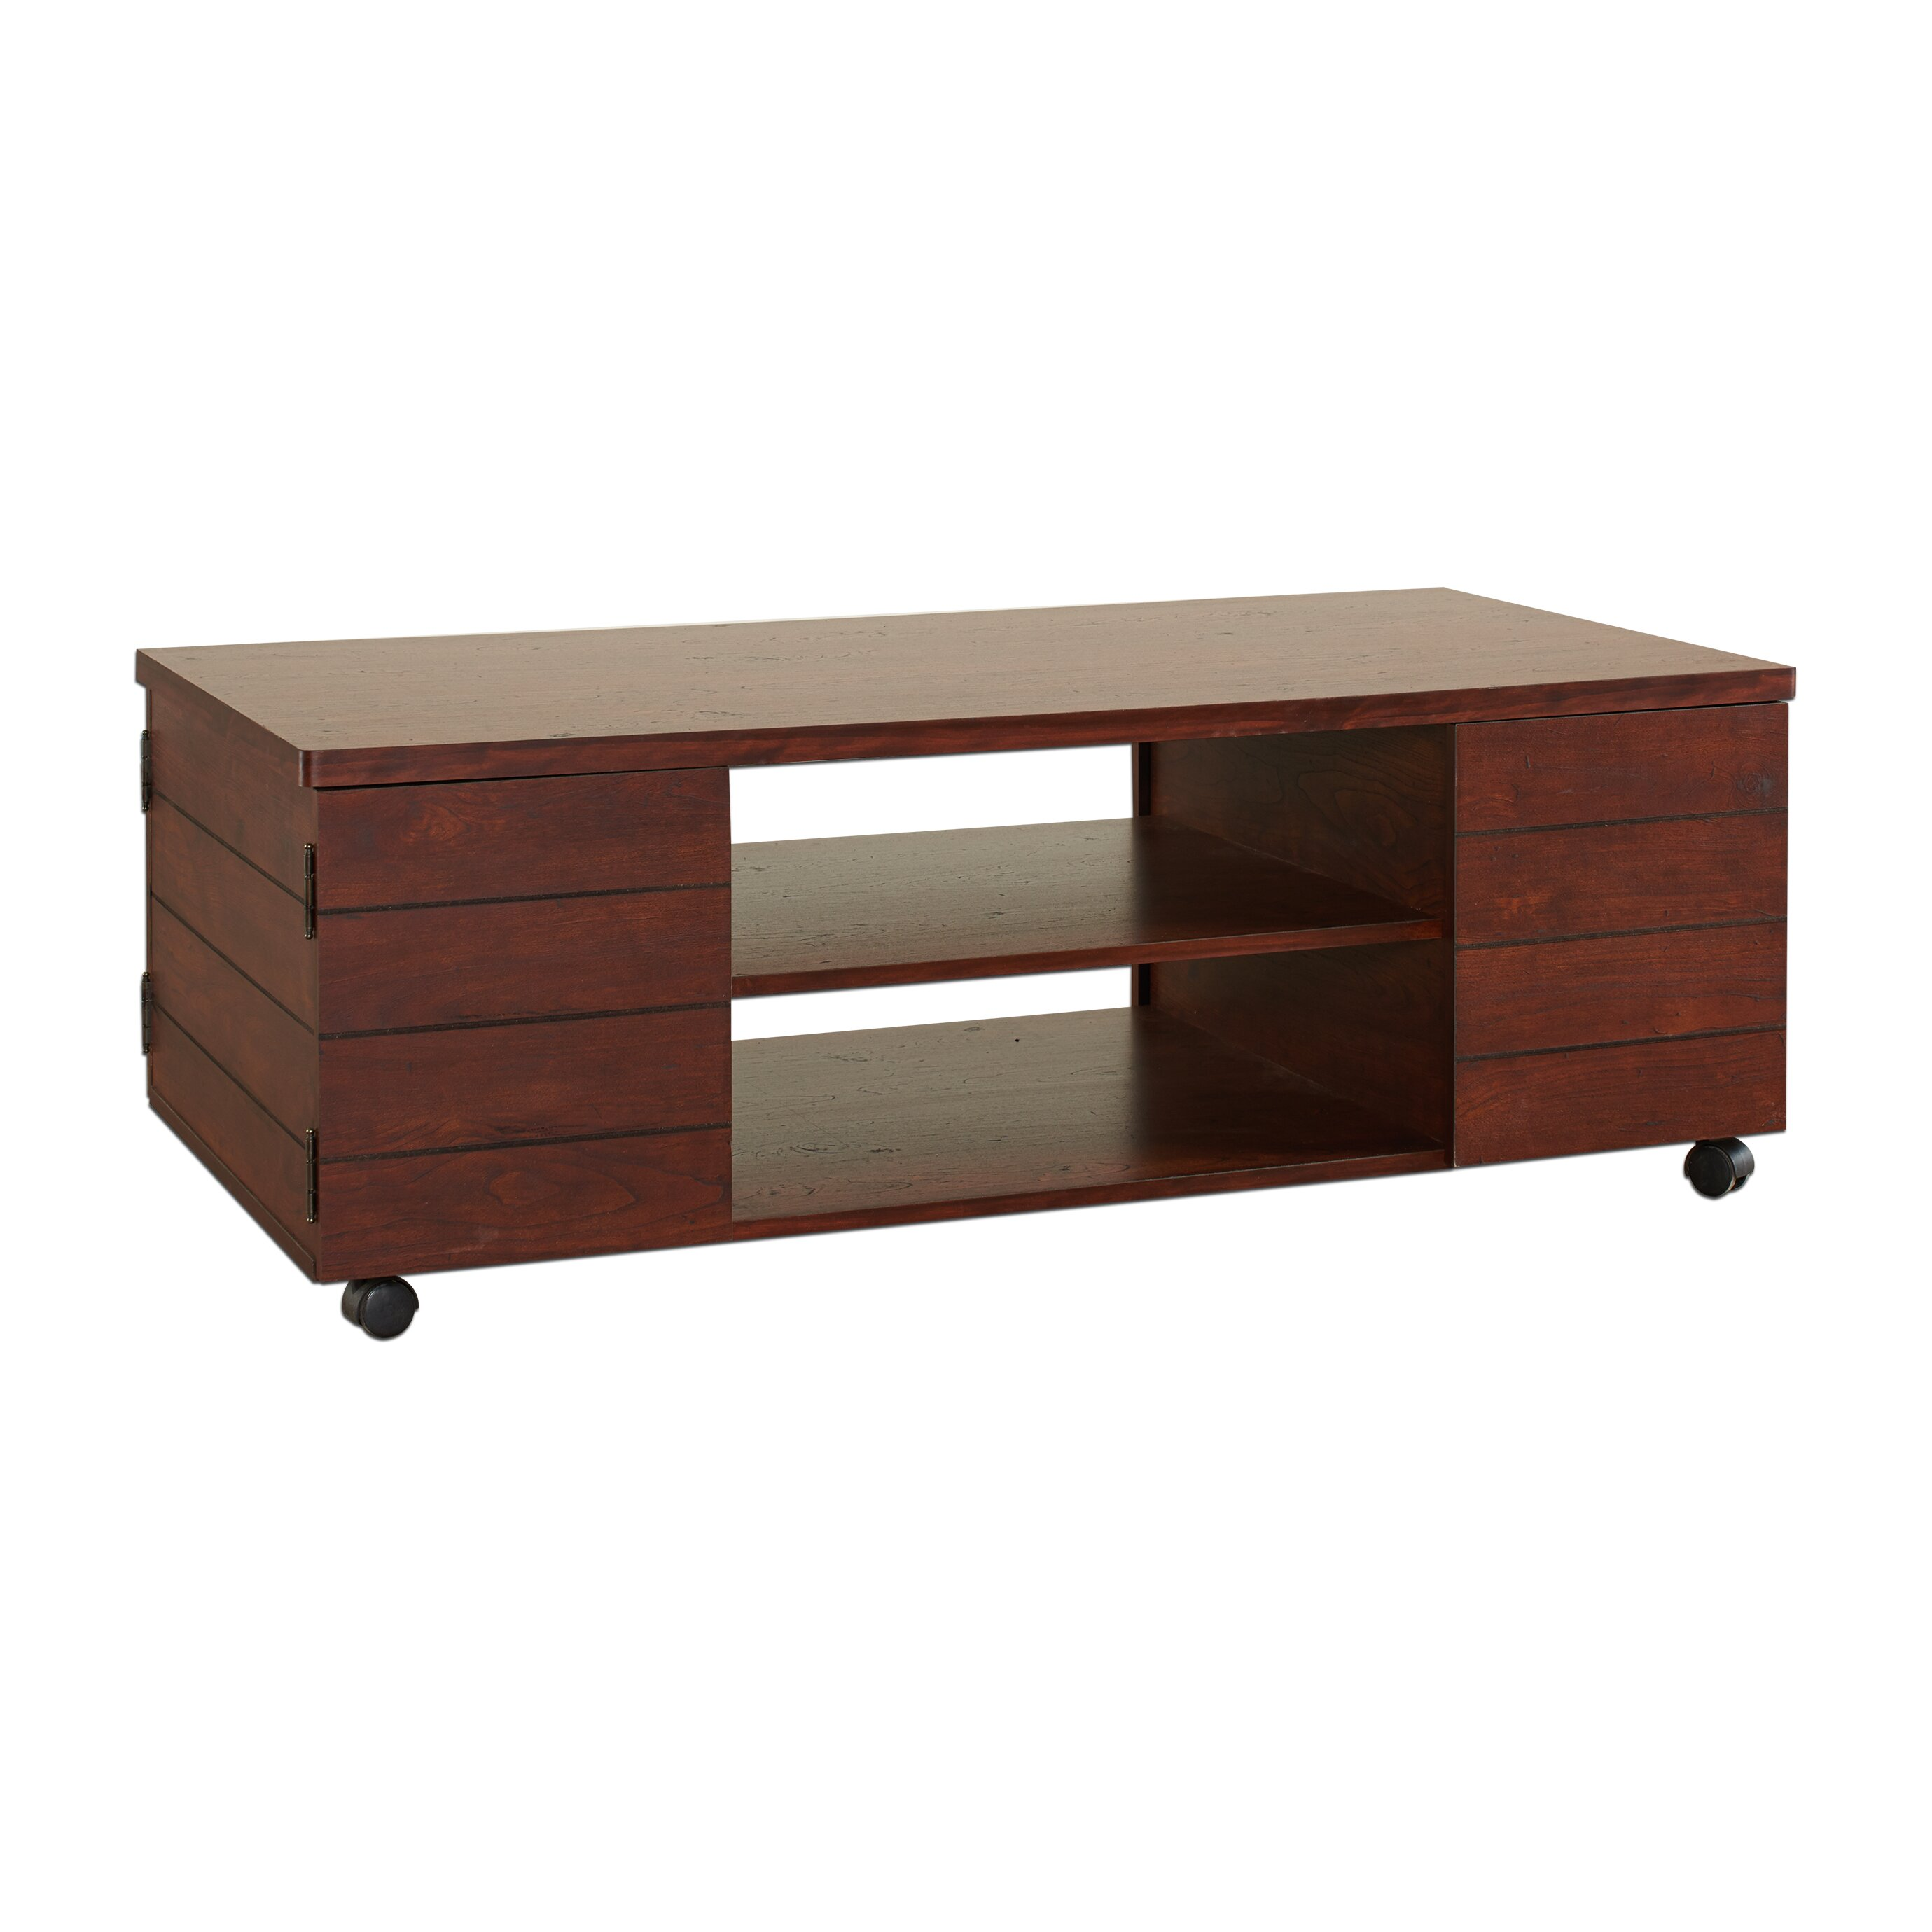 Hokku Designs Anselmo Coffee Table Reviews Wayfair